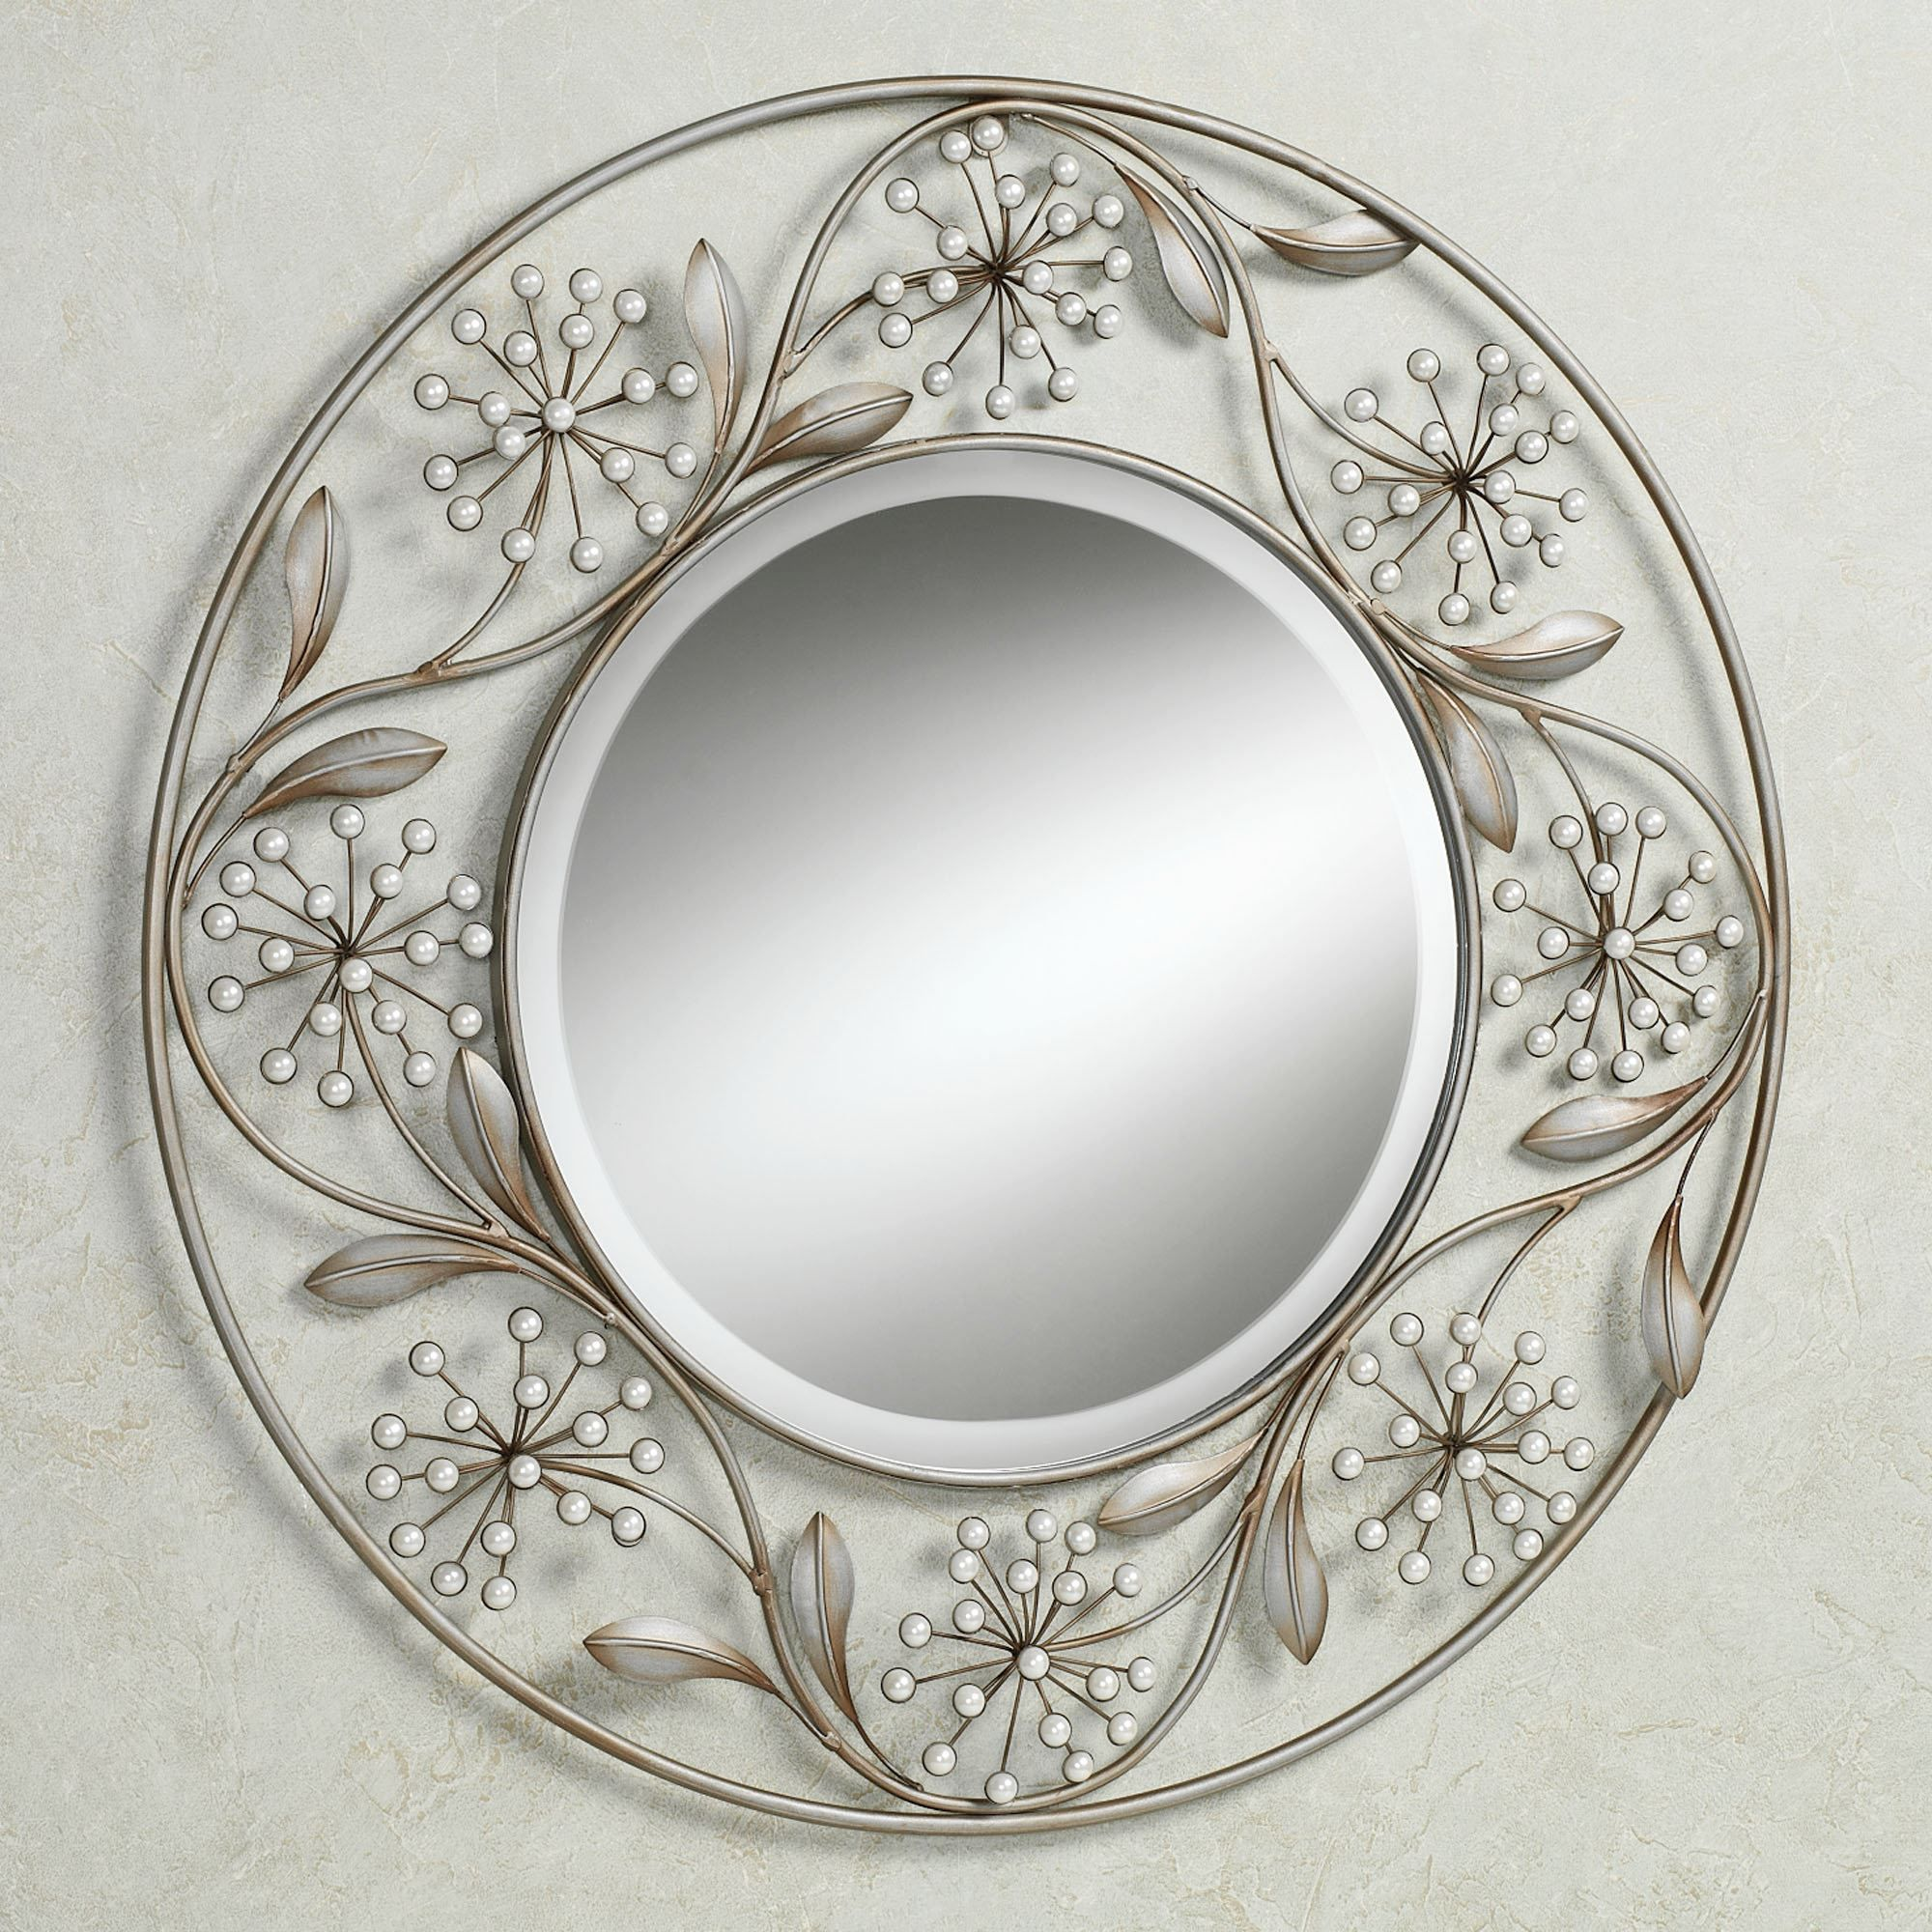 room decor living spaces mirrors most for decorative attachment wall furniture